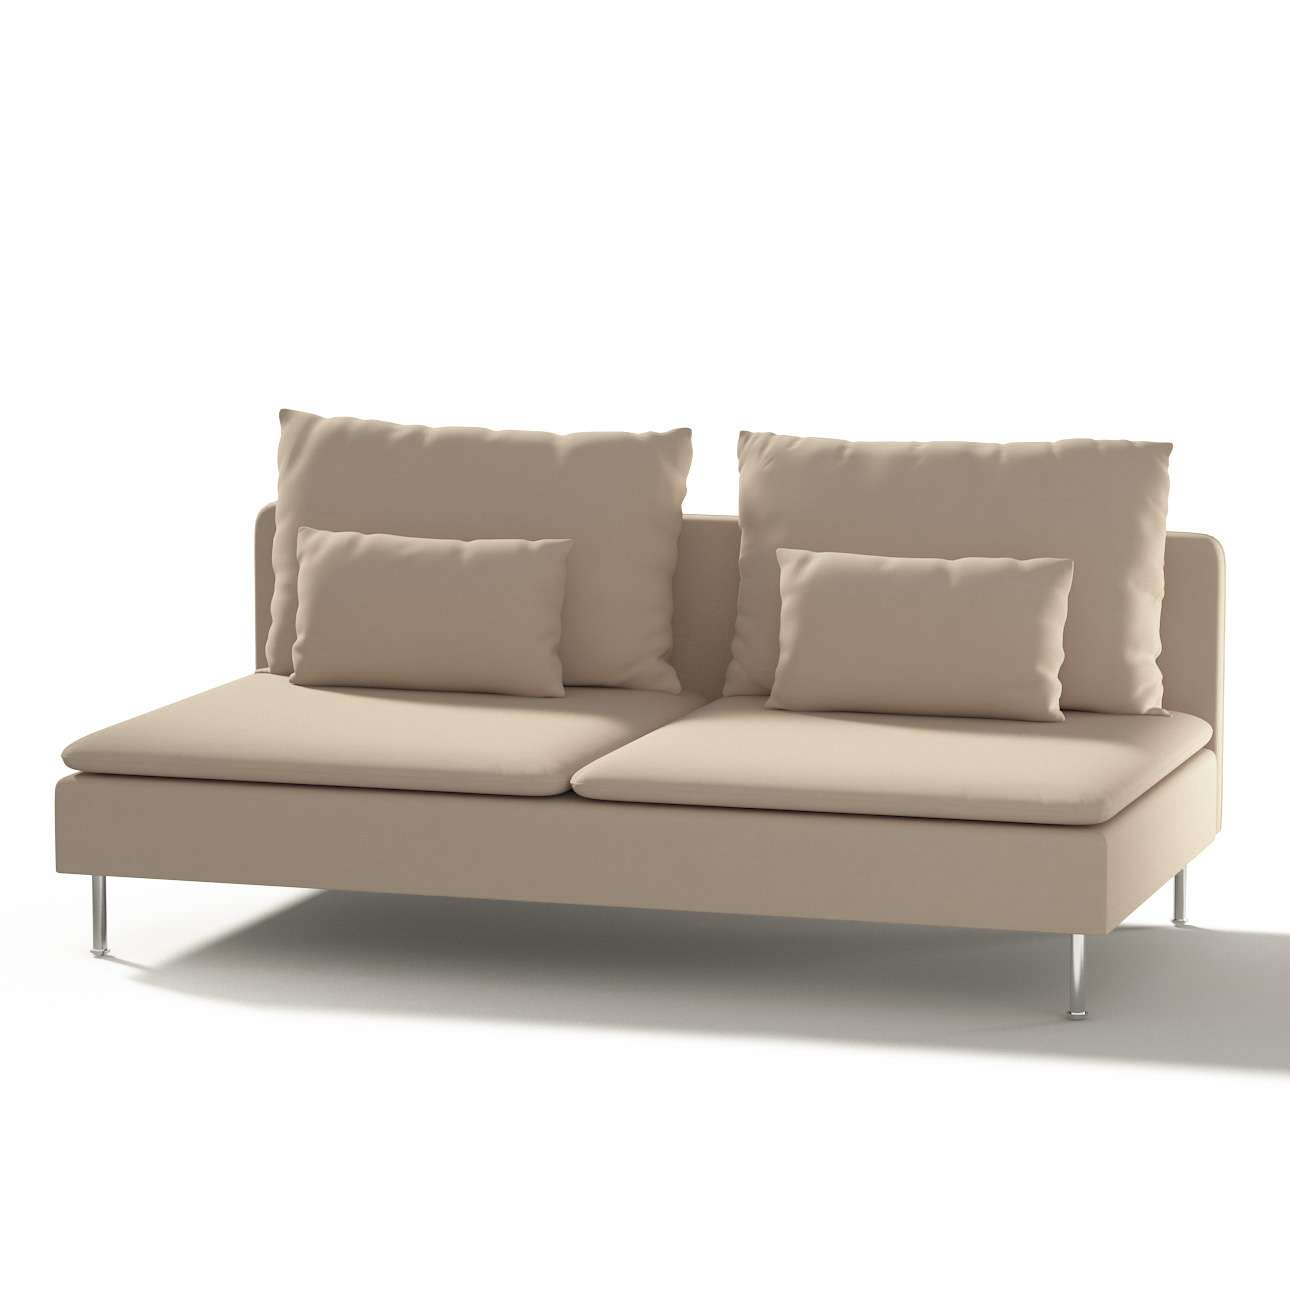 Söderhamn 3-seater section in collection Panama Cotton, fabric: 702-01